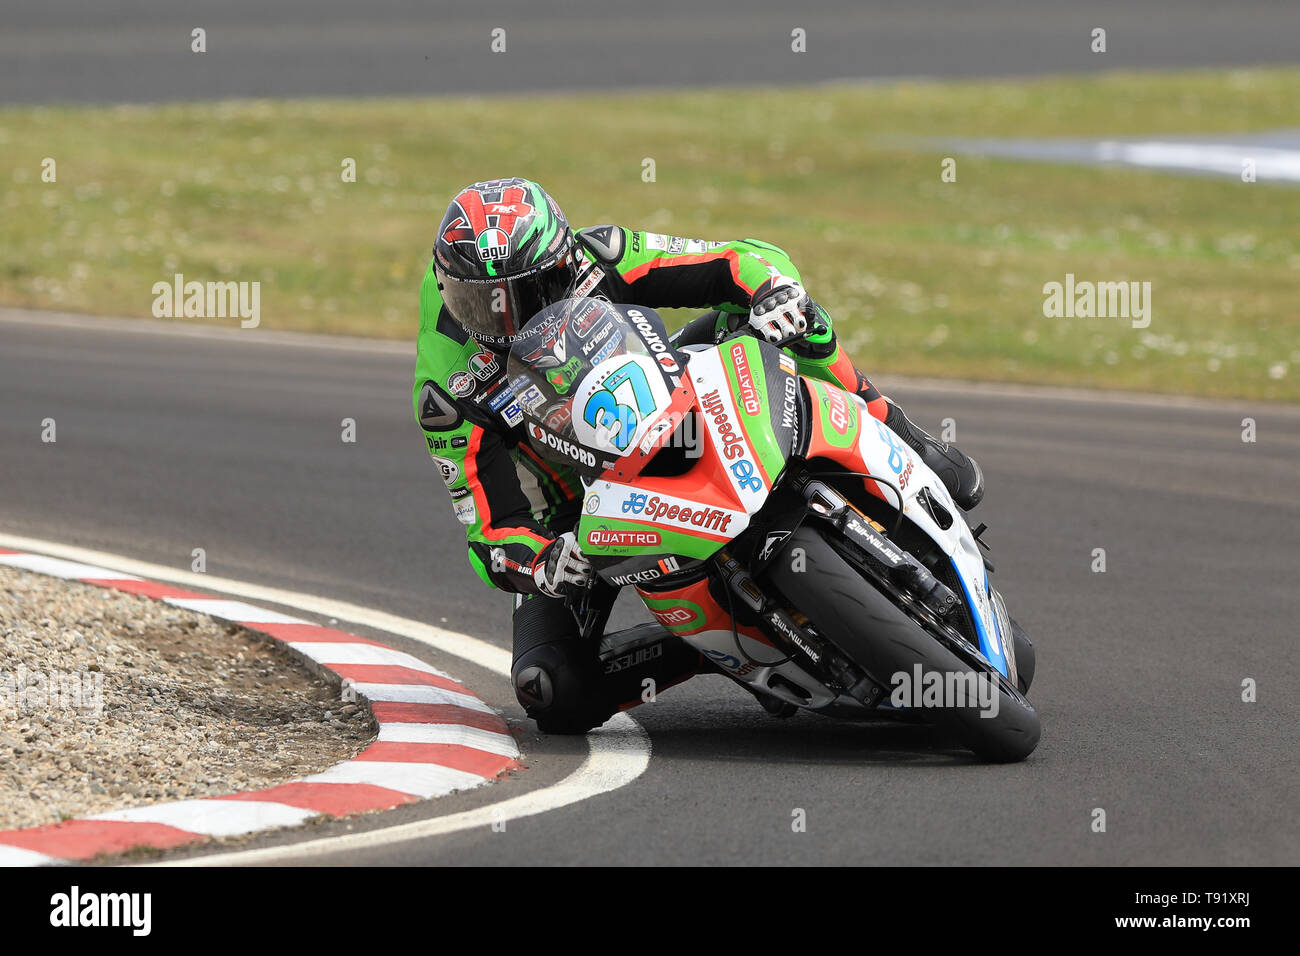 Portrush, Northern Ireland. 16th May, 2019. International North West 200 Motorcycle road racing, Thursday practice and evening racing; James Hillier was 3rd fastest on the Quattro Plant Wicked Coatings Kawasaki during the SuperStock qualifying session Credit: Action Plus Sports/Alamy Live News - Stock Image